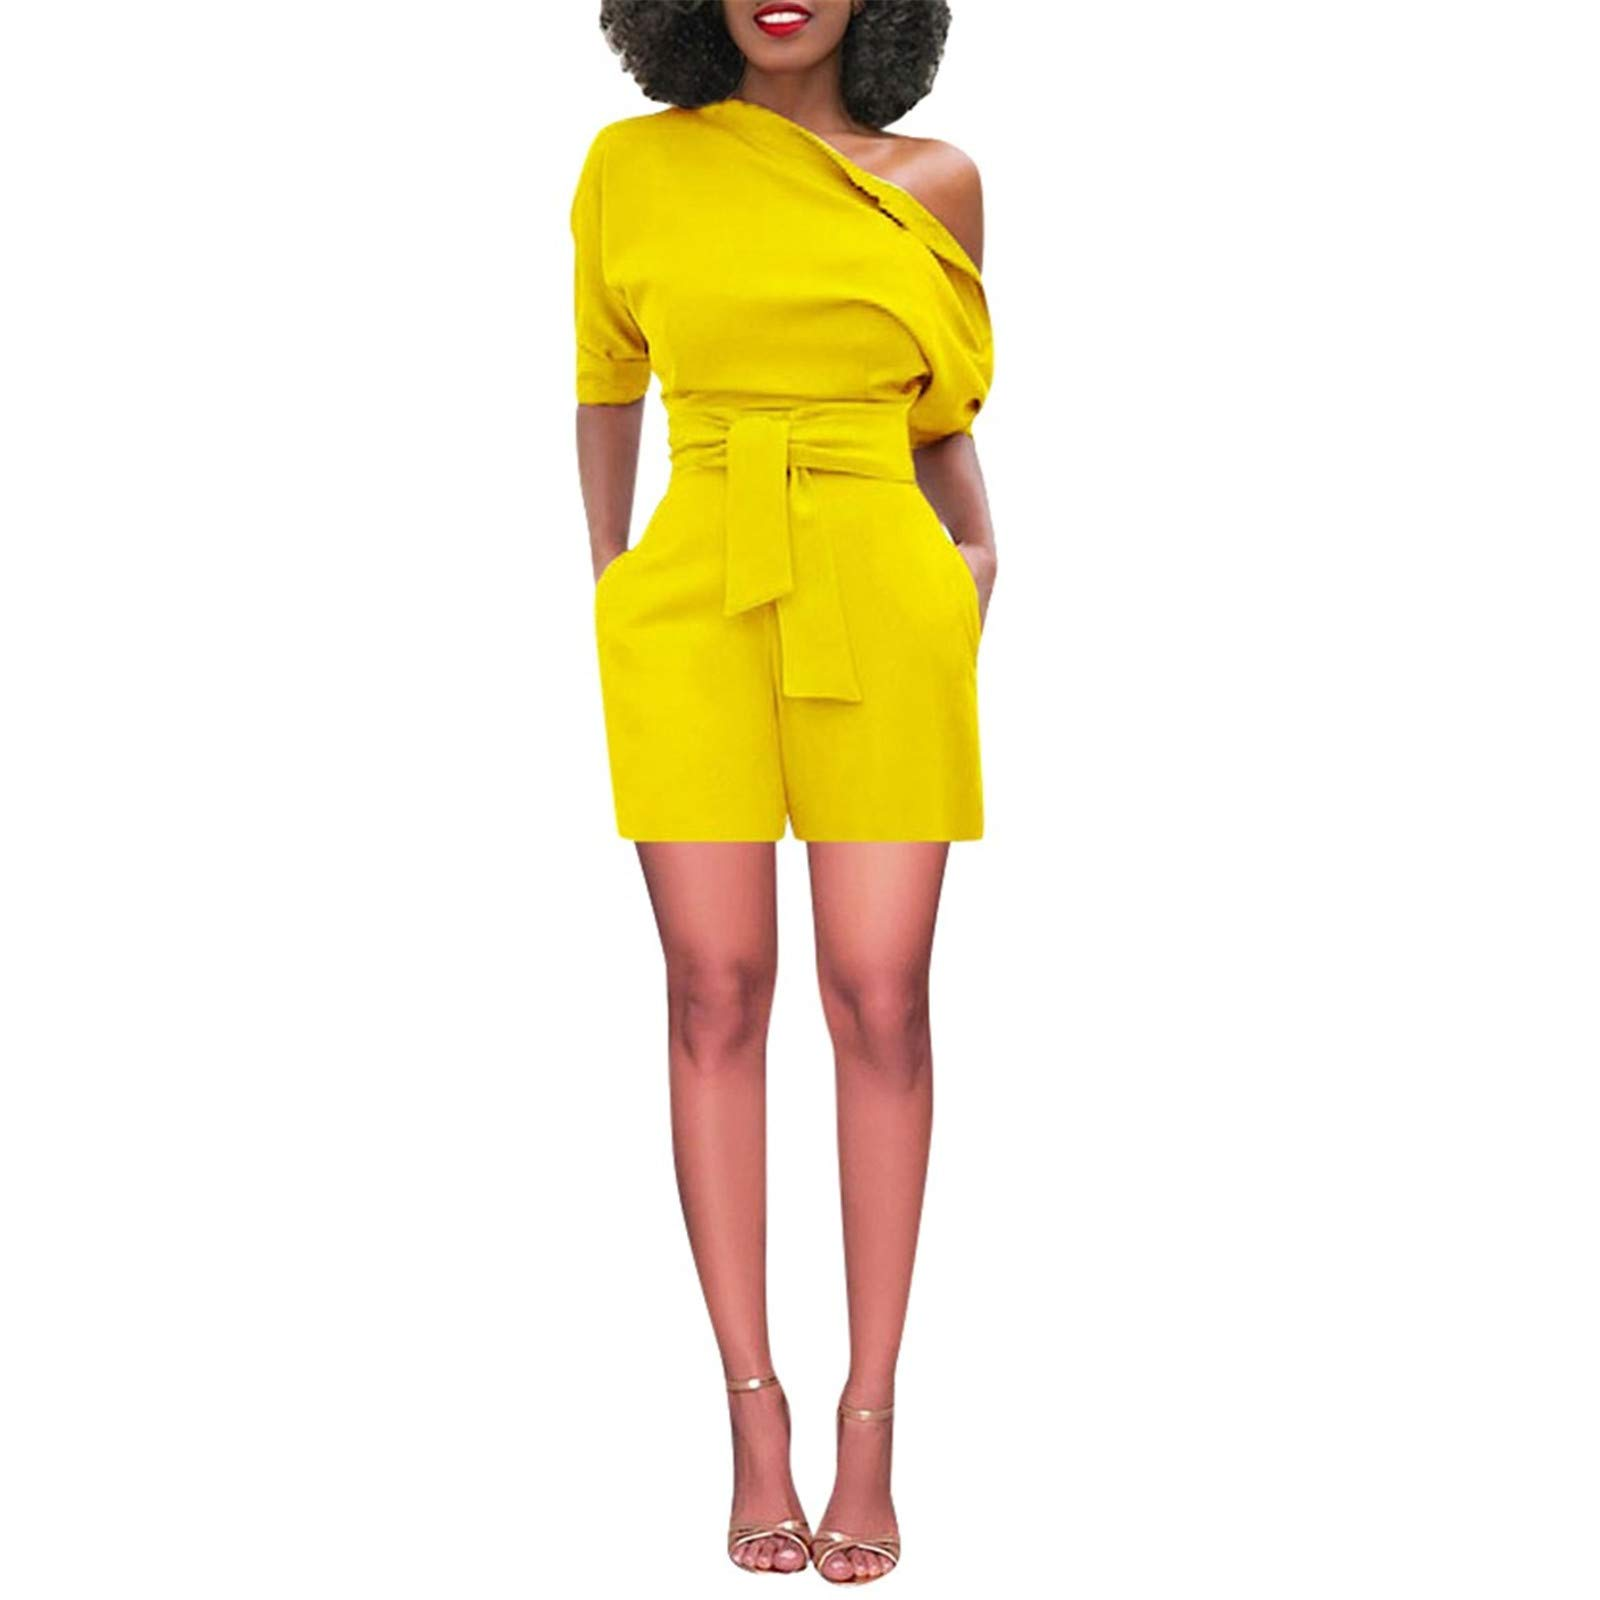 Thenxin Office Lady Jumpsuit Shorts Off Shoulder Short Sleeve Romper High Waist Playsuit with Belt(Yellow,M)